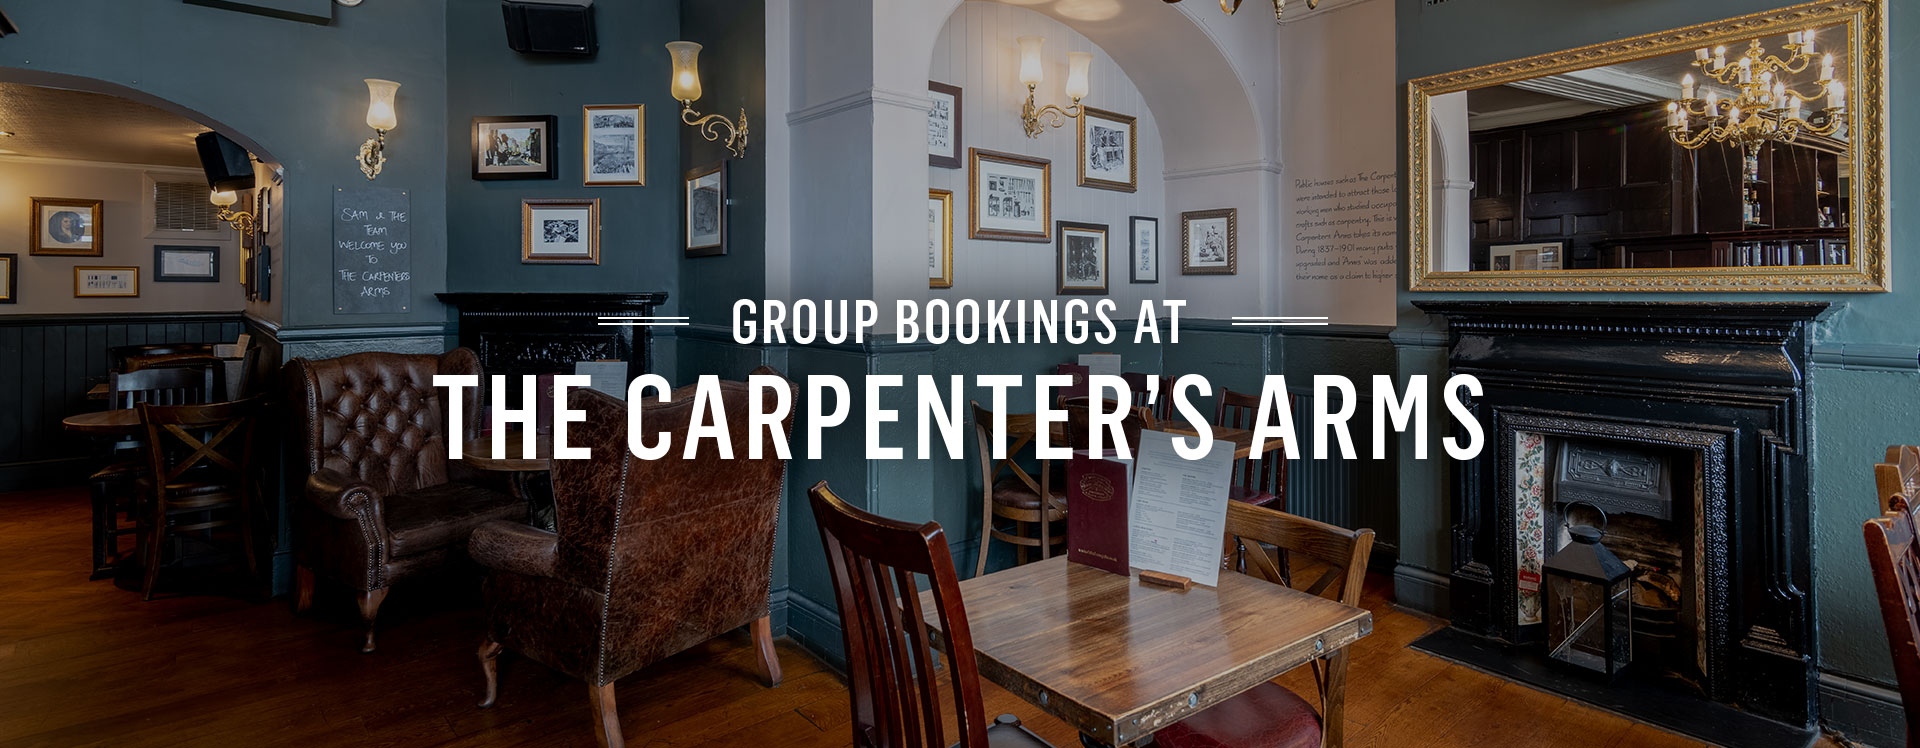 Group Bookings at The Carpenter's Arms